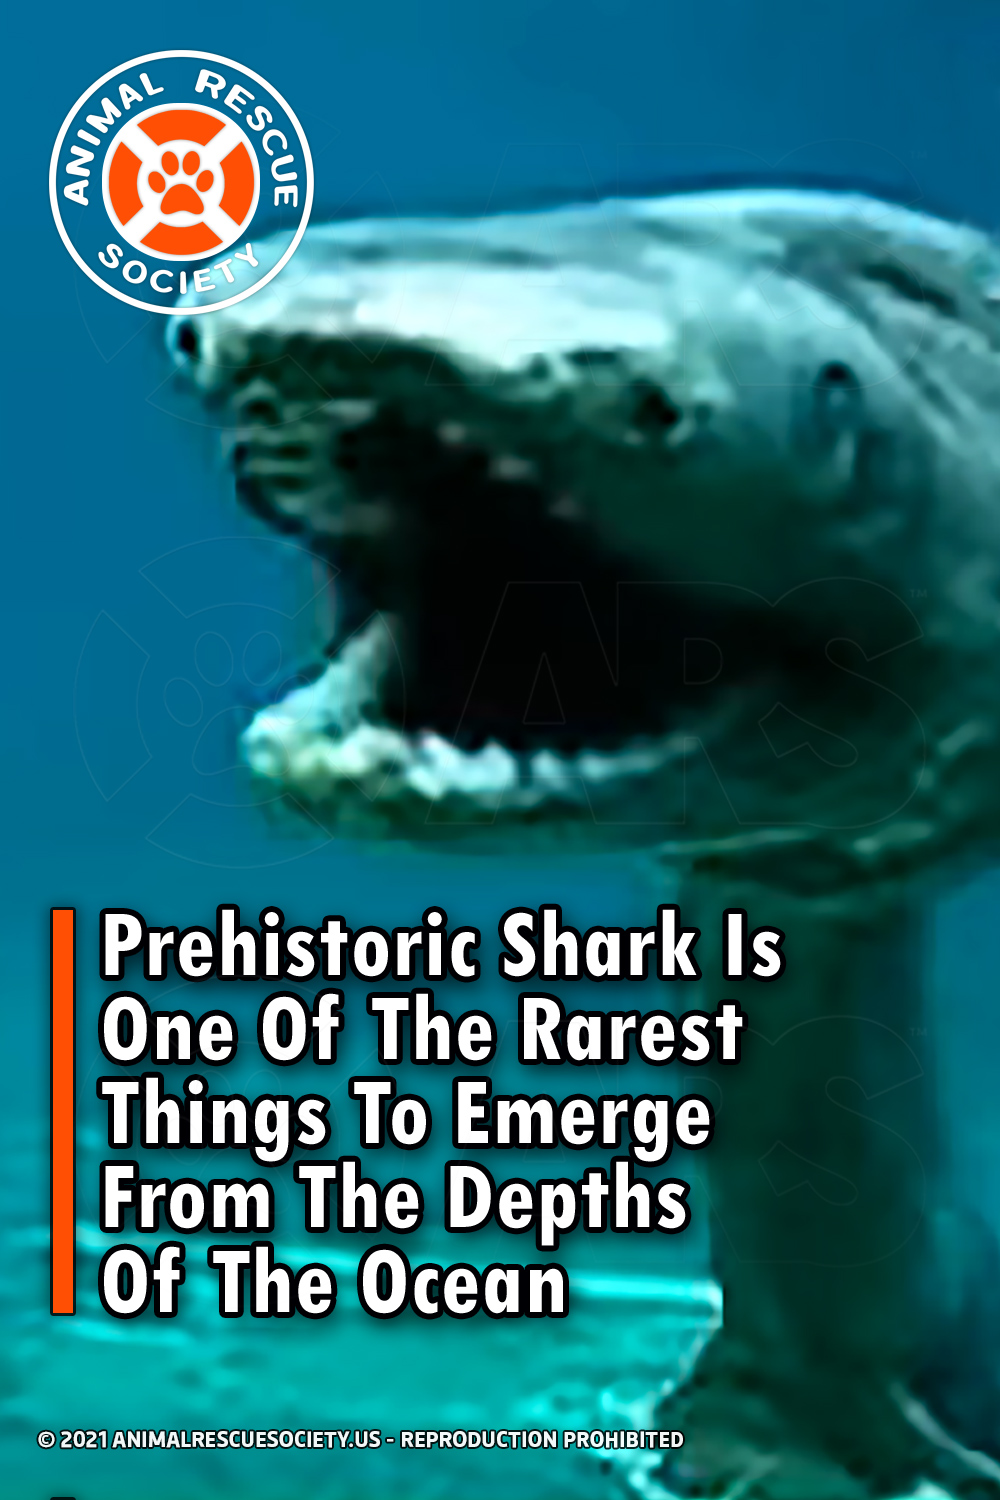 Prehistoric Shark Is One Of The Rarest Things To Emerge From The Depths Of The Ocean